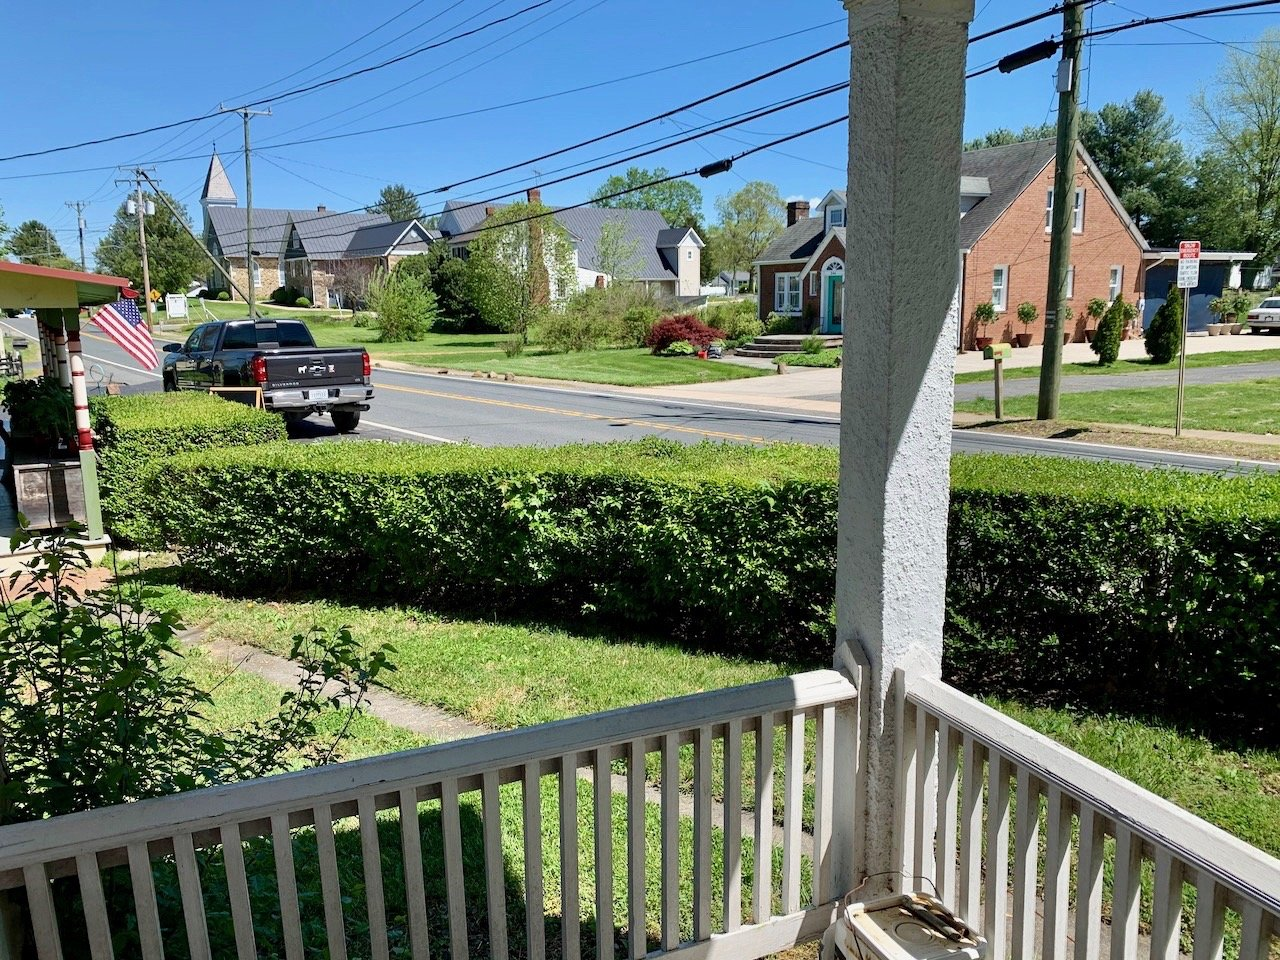 Image for 3 BR/1.5 BA Home on .35 +/- Acre Lot in the Town of Hamilton, VA--SELLS to the HIGHEST BIDDER!!